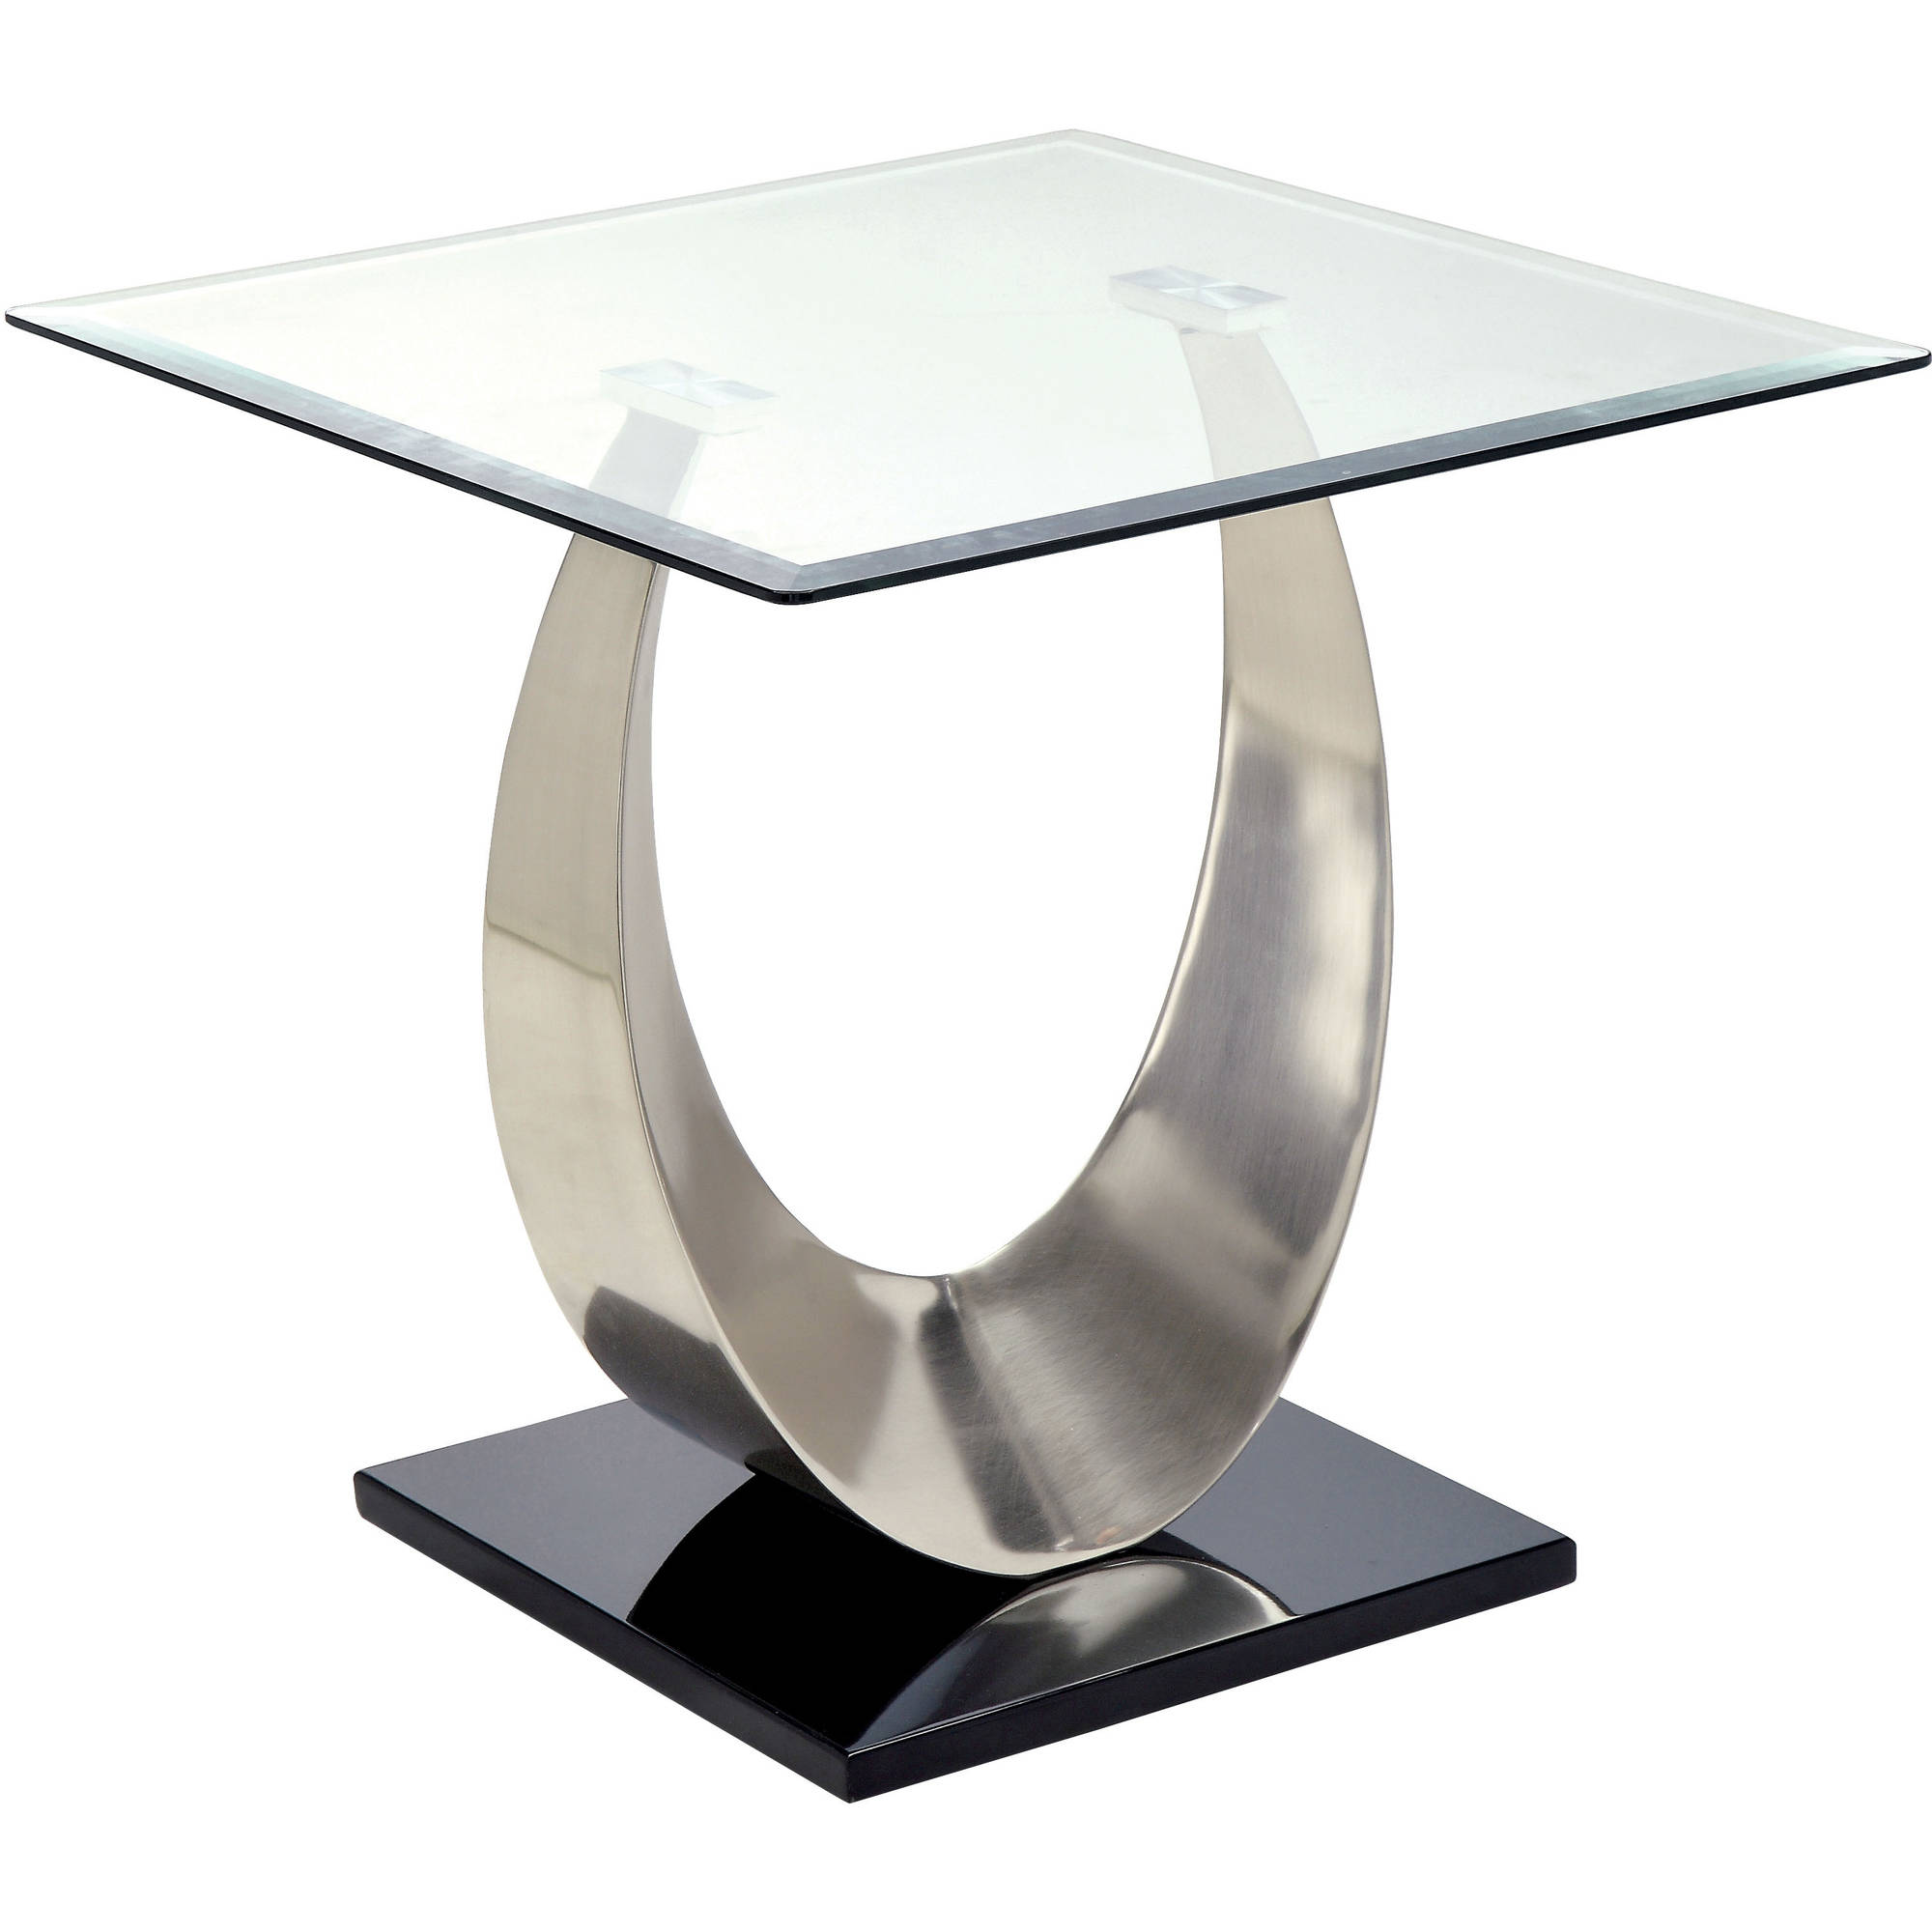 Furniture of America Nessa Contemporary End Table, Black and Satin